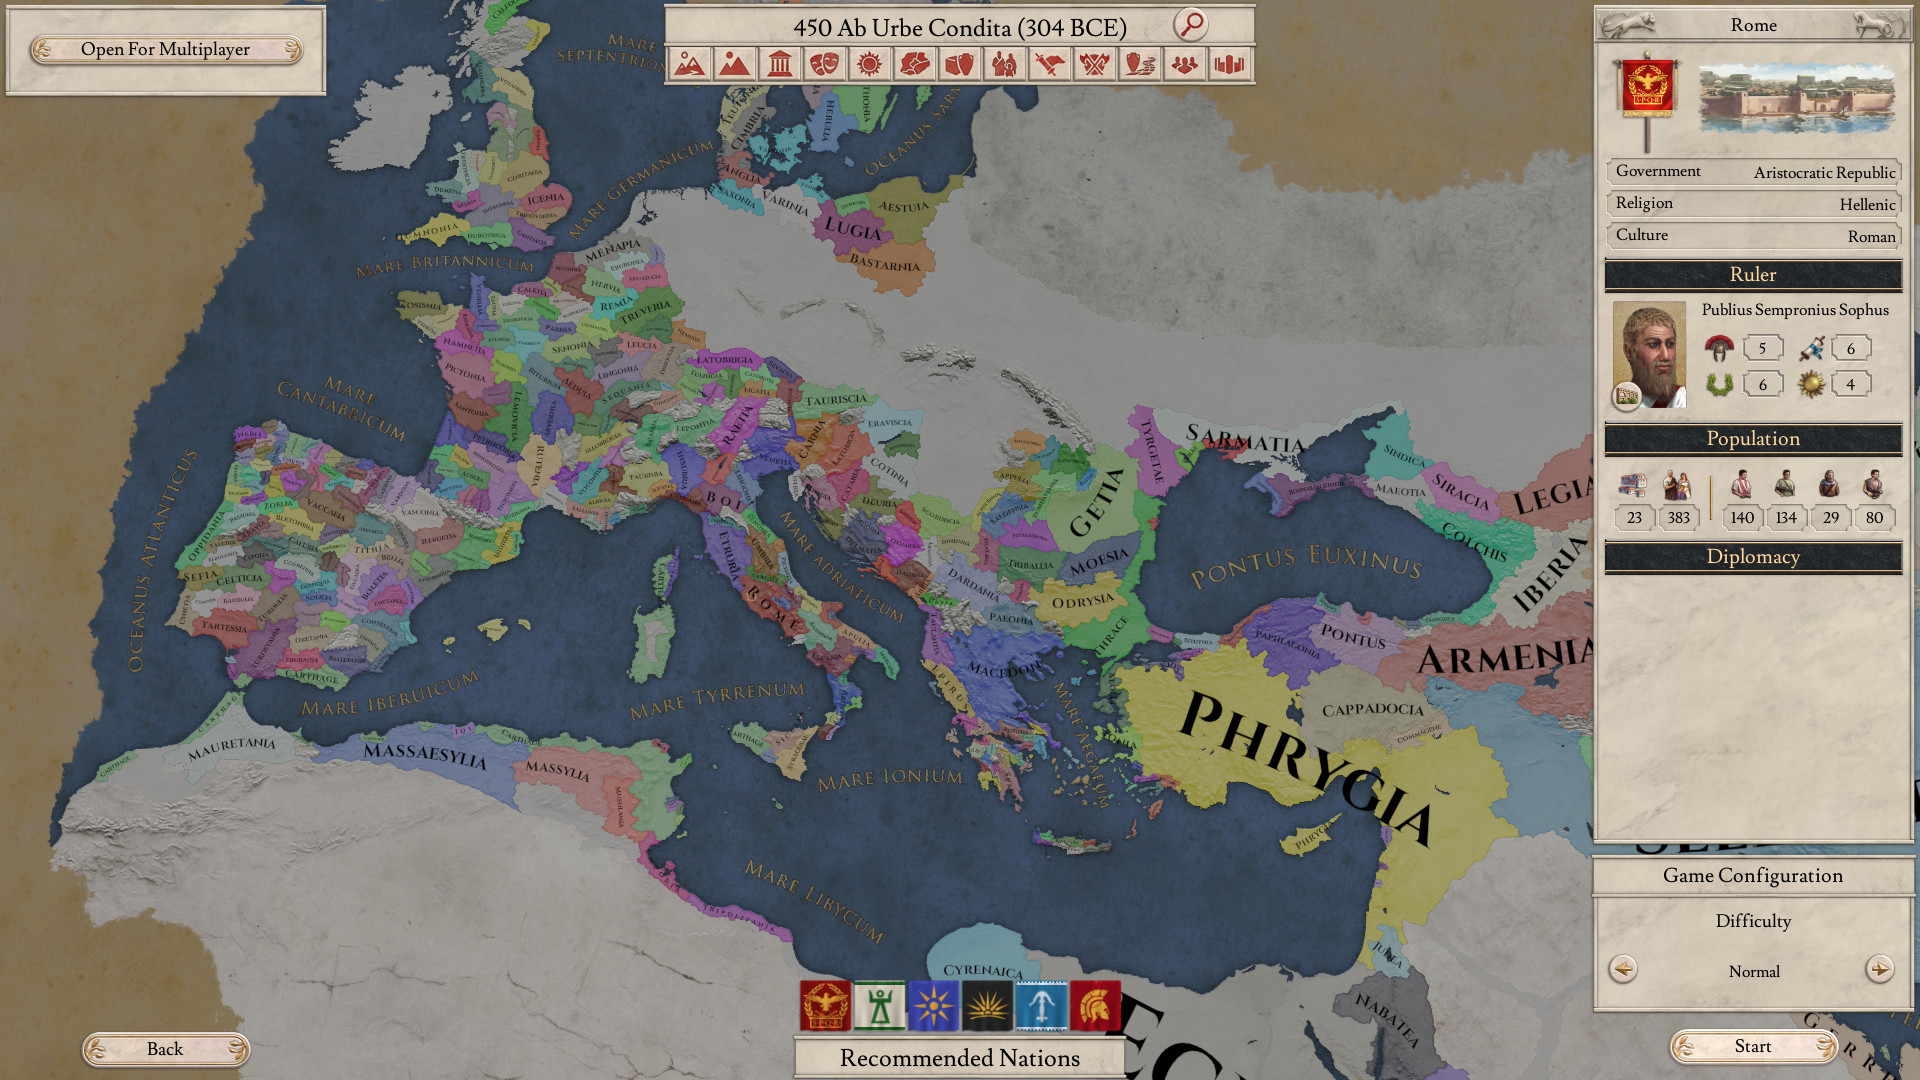 Mediterranean Oyster: The world of Classical antiquity is your oyster in Imperator: Rome.